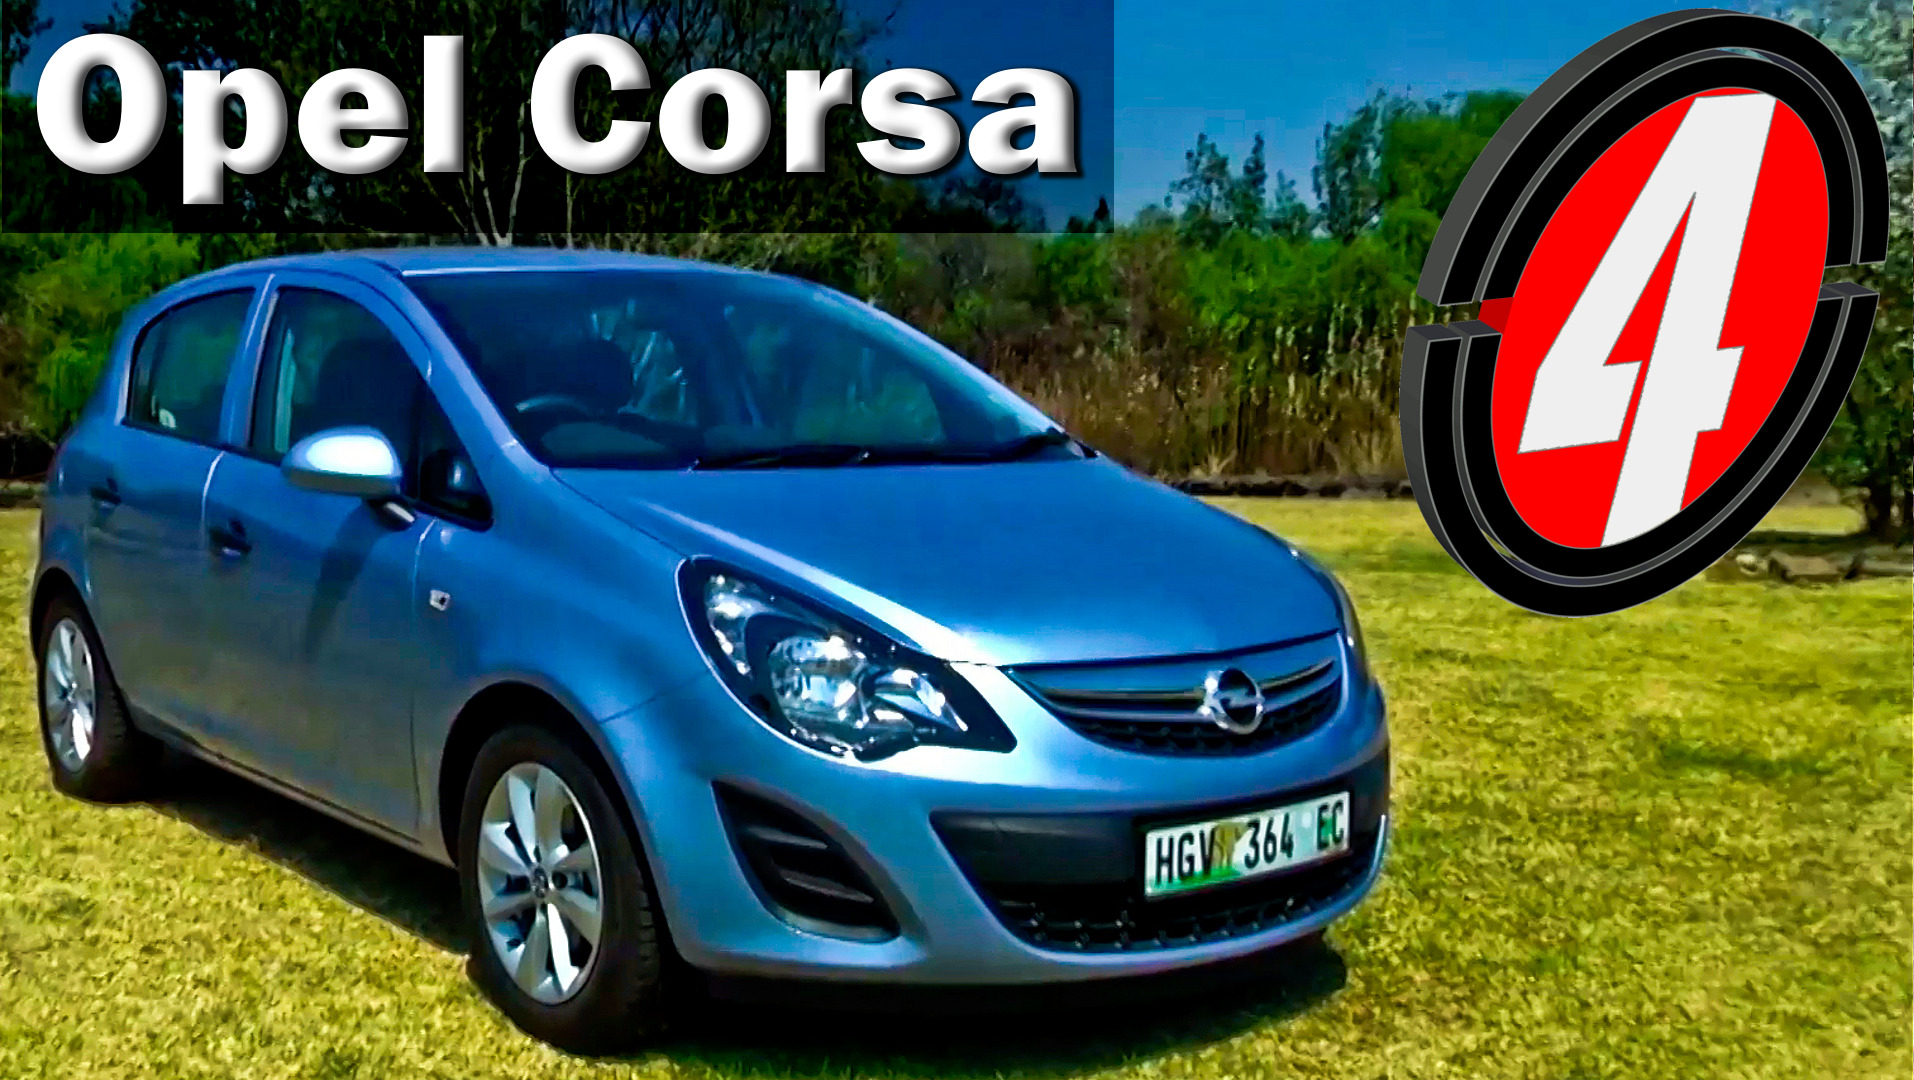 2014 Opel Corsa Essentia | Video Review | Surf4cars